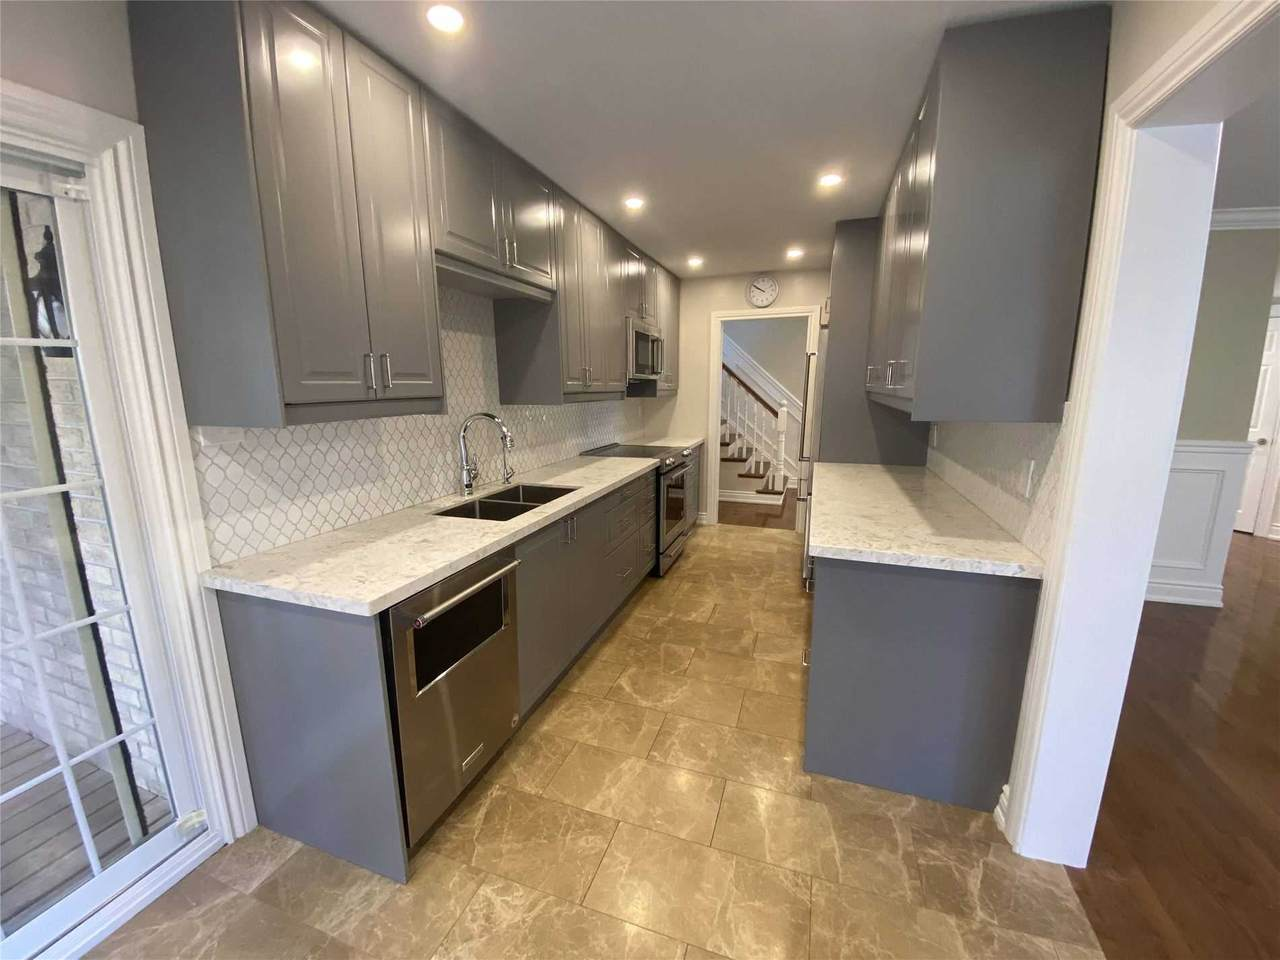 201 Sewell Dr - Photo 1